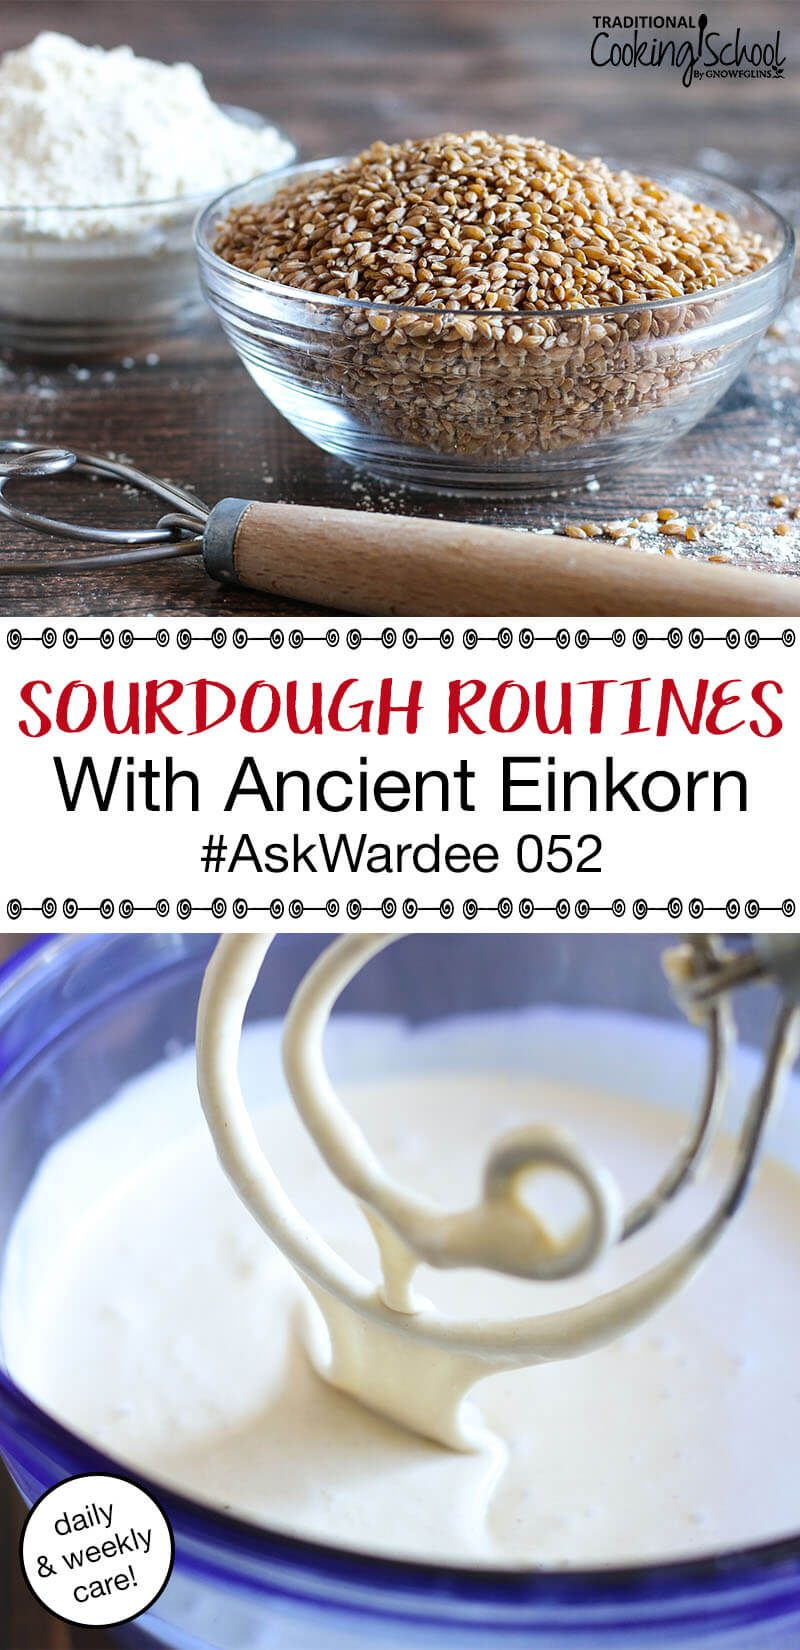 2 Sourdough Routines With Einkorn Daily & Weekly Care